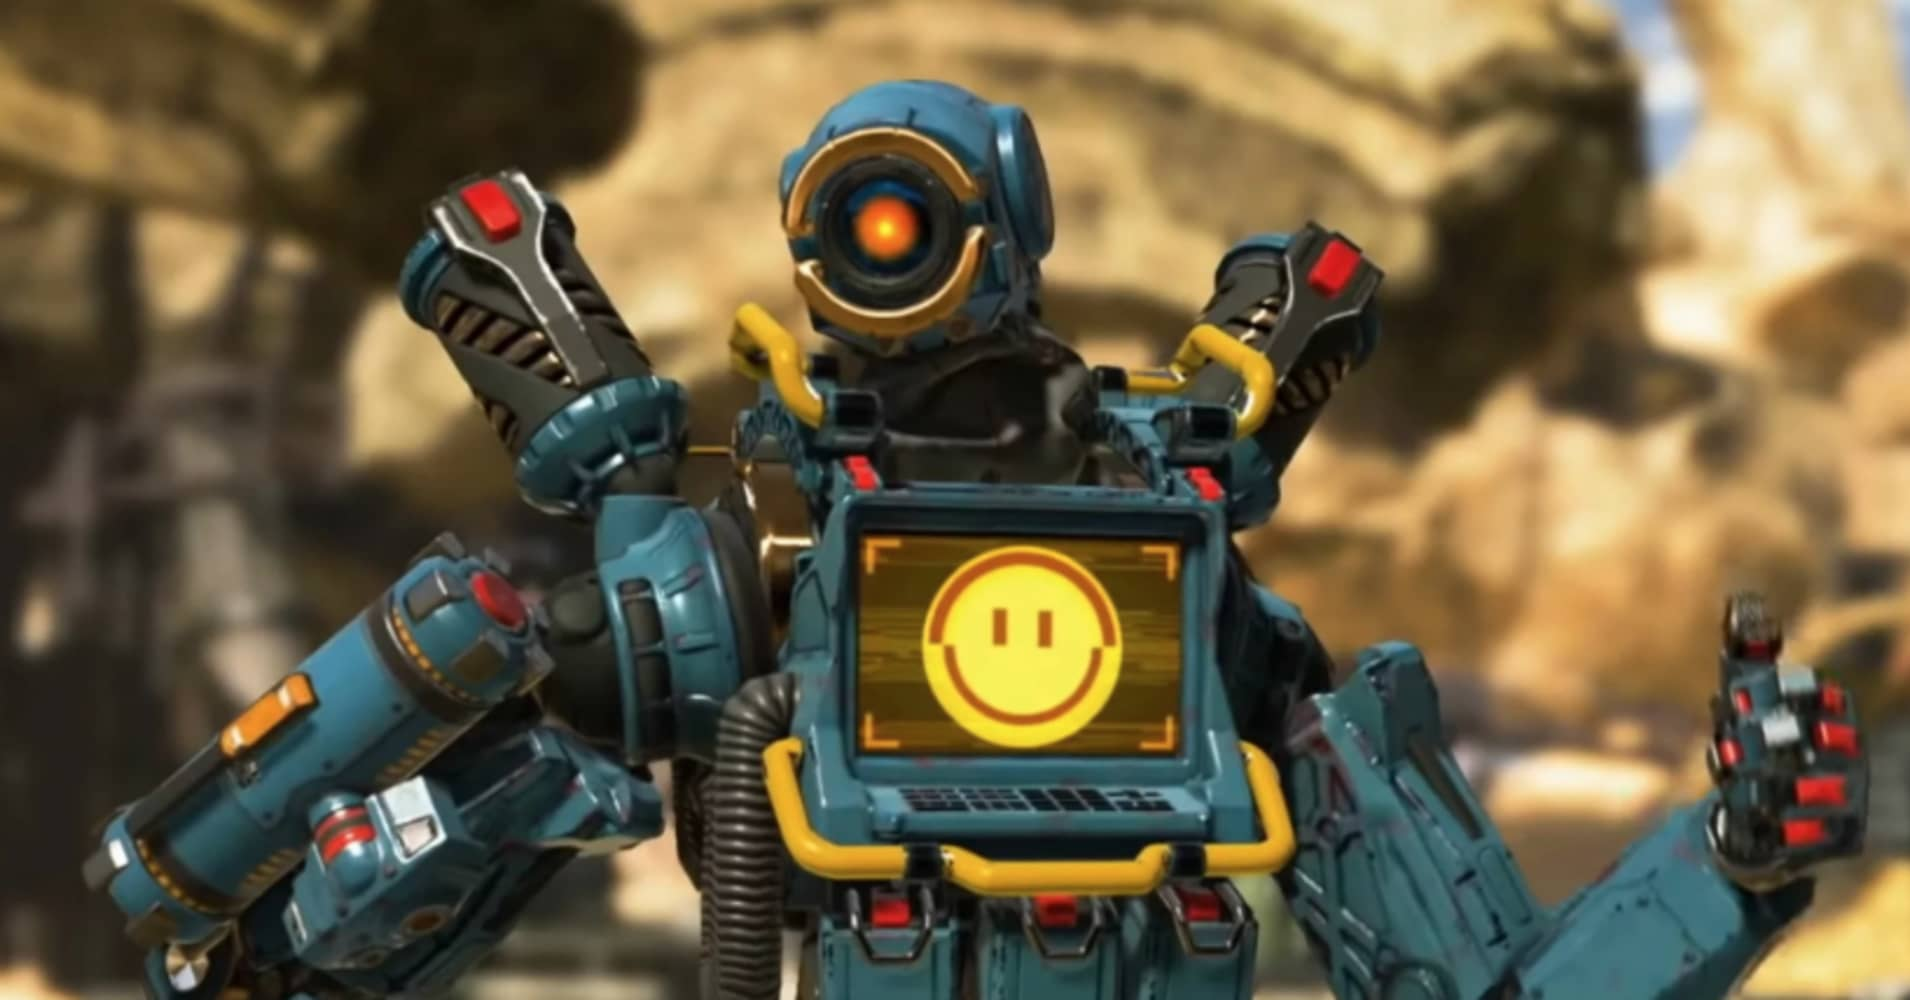 Royale video game rumble: 'Apex Legends' smashing 'Fortnite' records